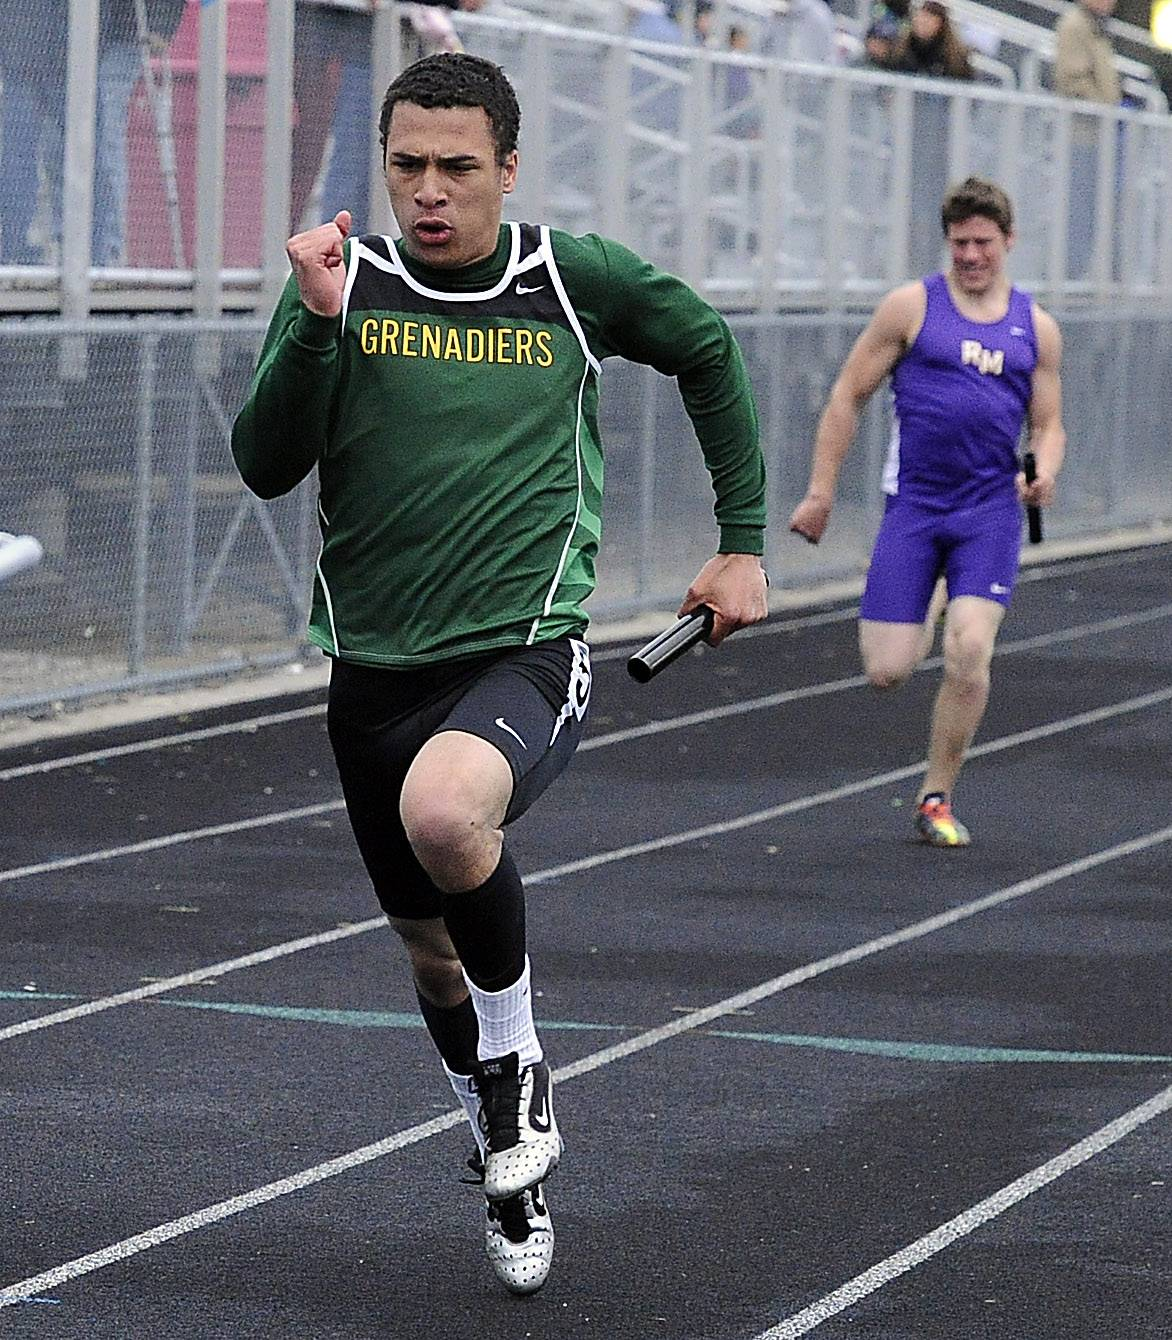 Heat one of the 400-meter relay found Elk Grove's John Pass winning at the MSL varsity Track and Field contest at Palatine High School on Friday.